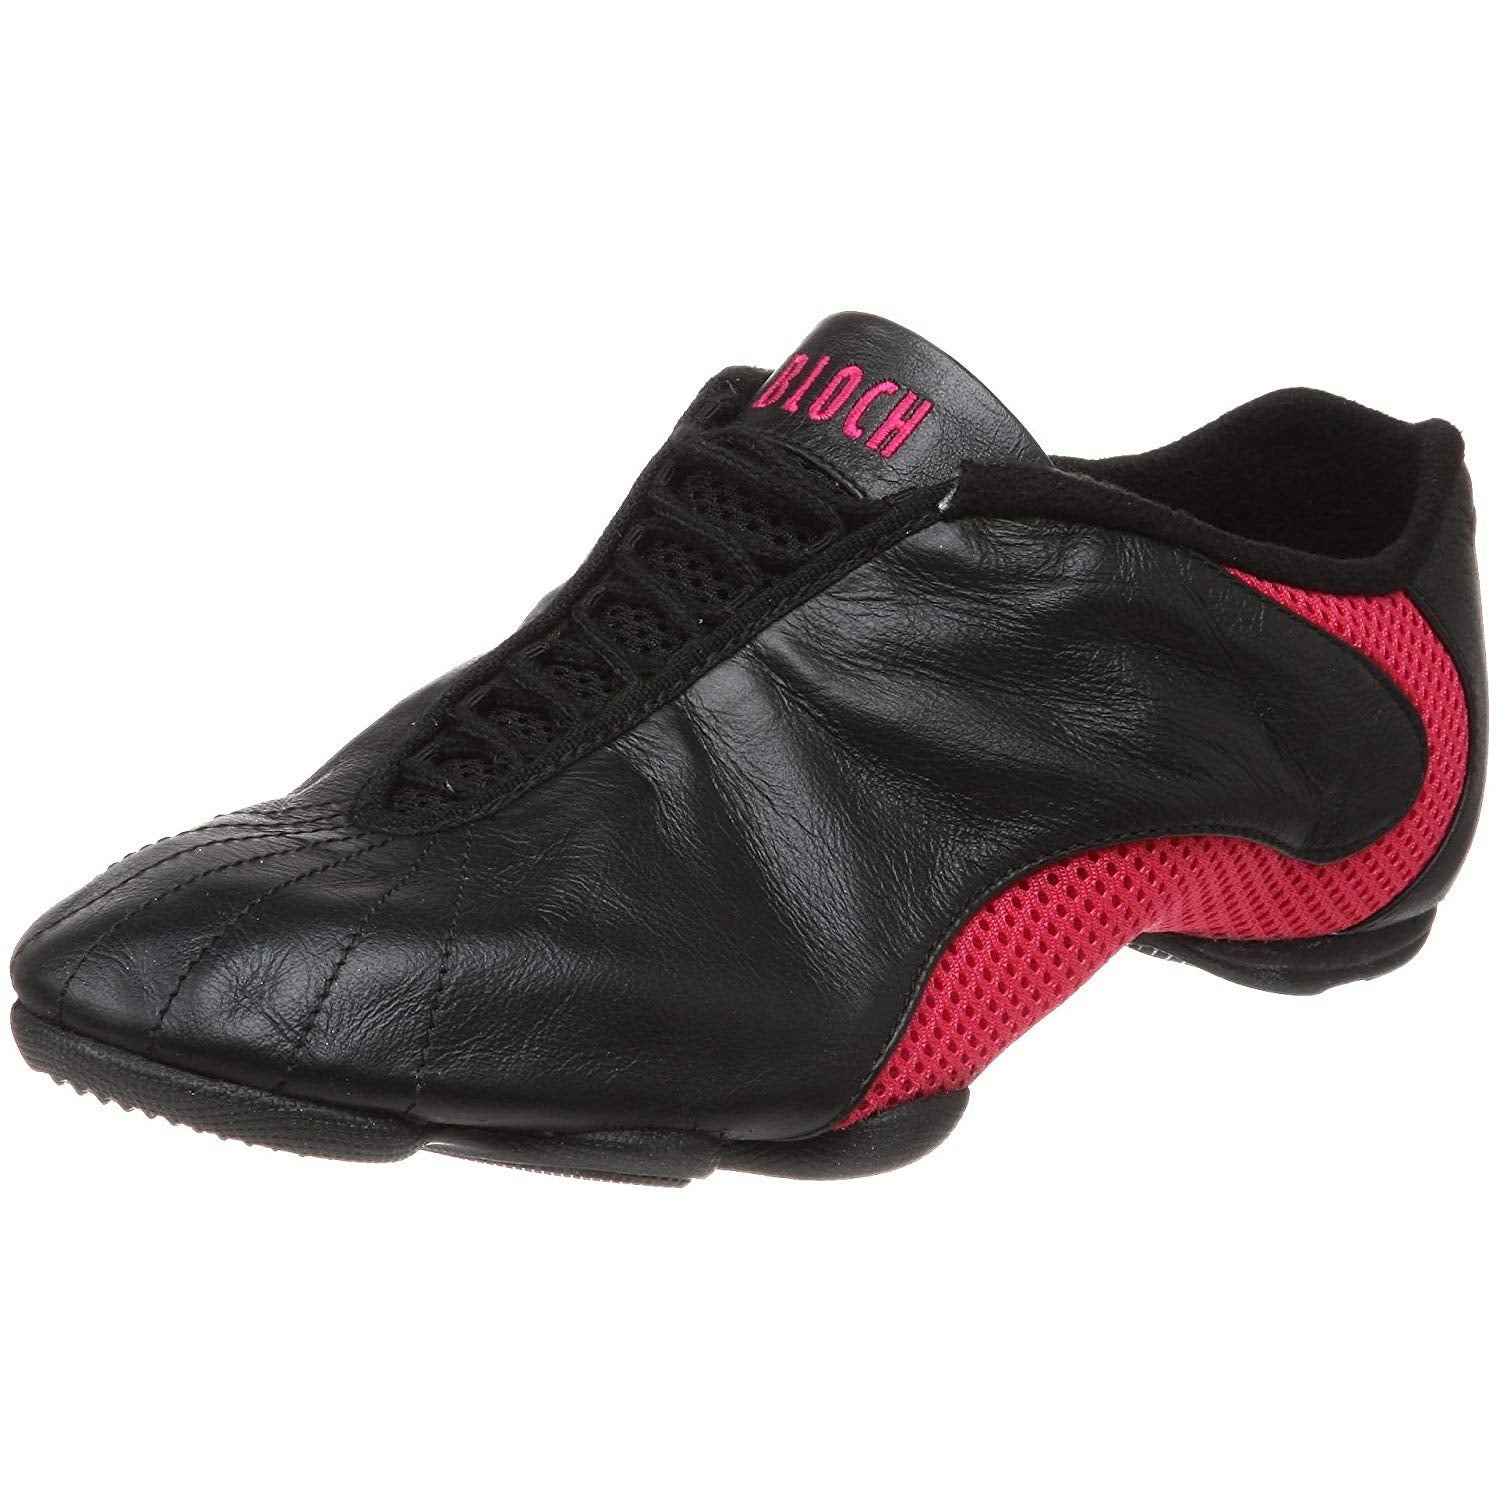 Best Women's Shoes Athletic At Buy Bloch Online OverstockOur QBoeWErdCx